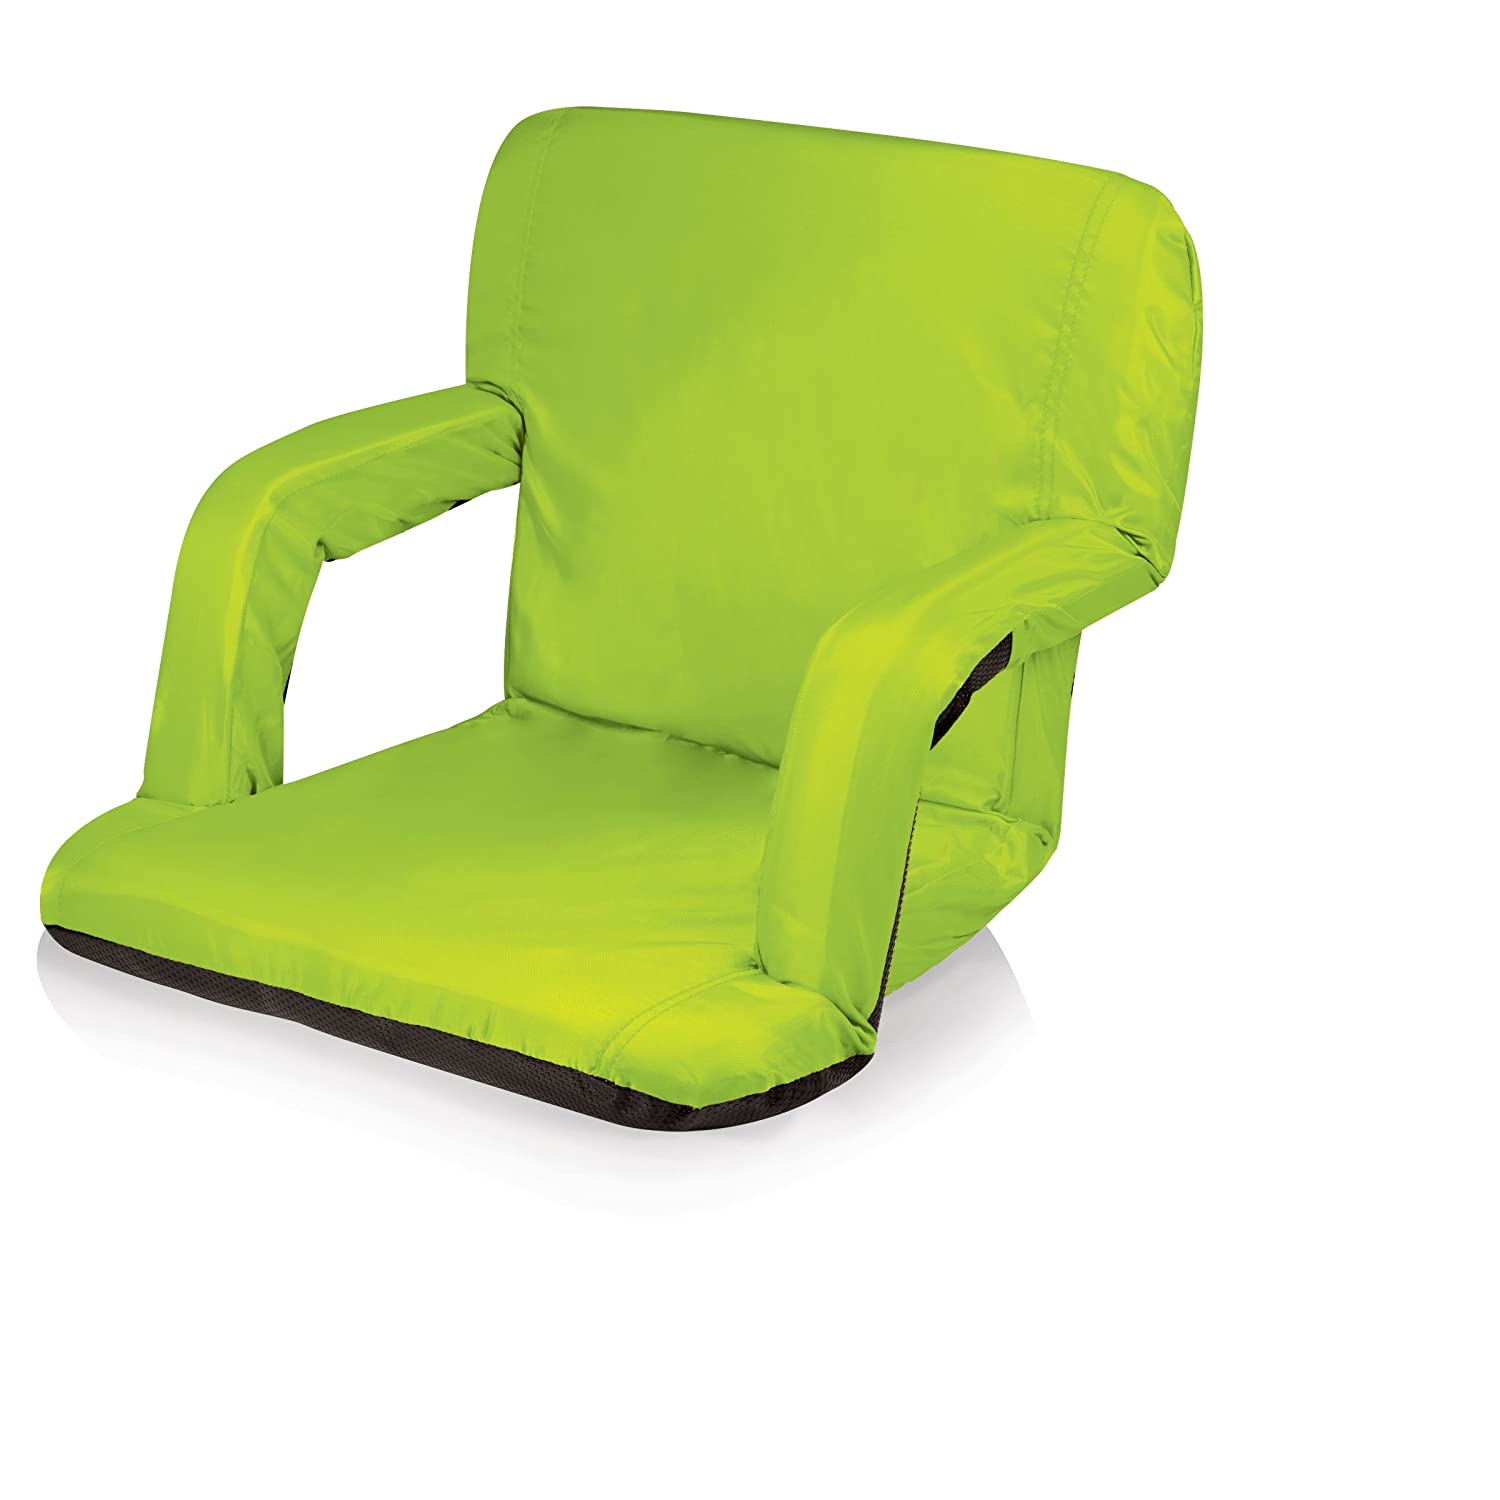 Best Travel Stadium Seats With Padded Cushions 20162017 on Flipboard – Chair for Bleachers